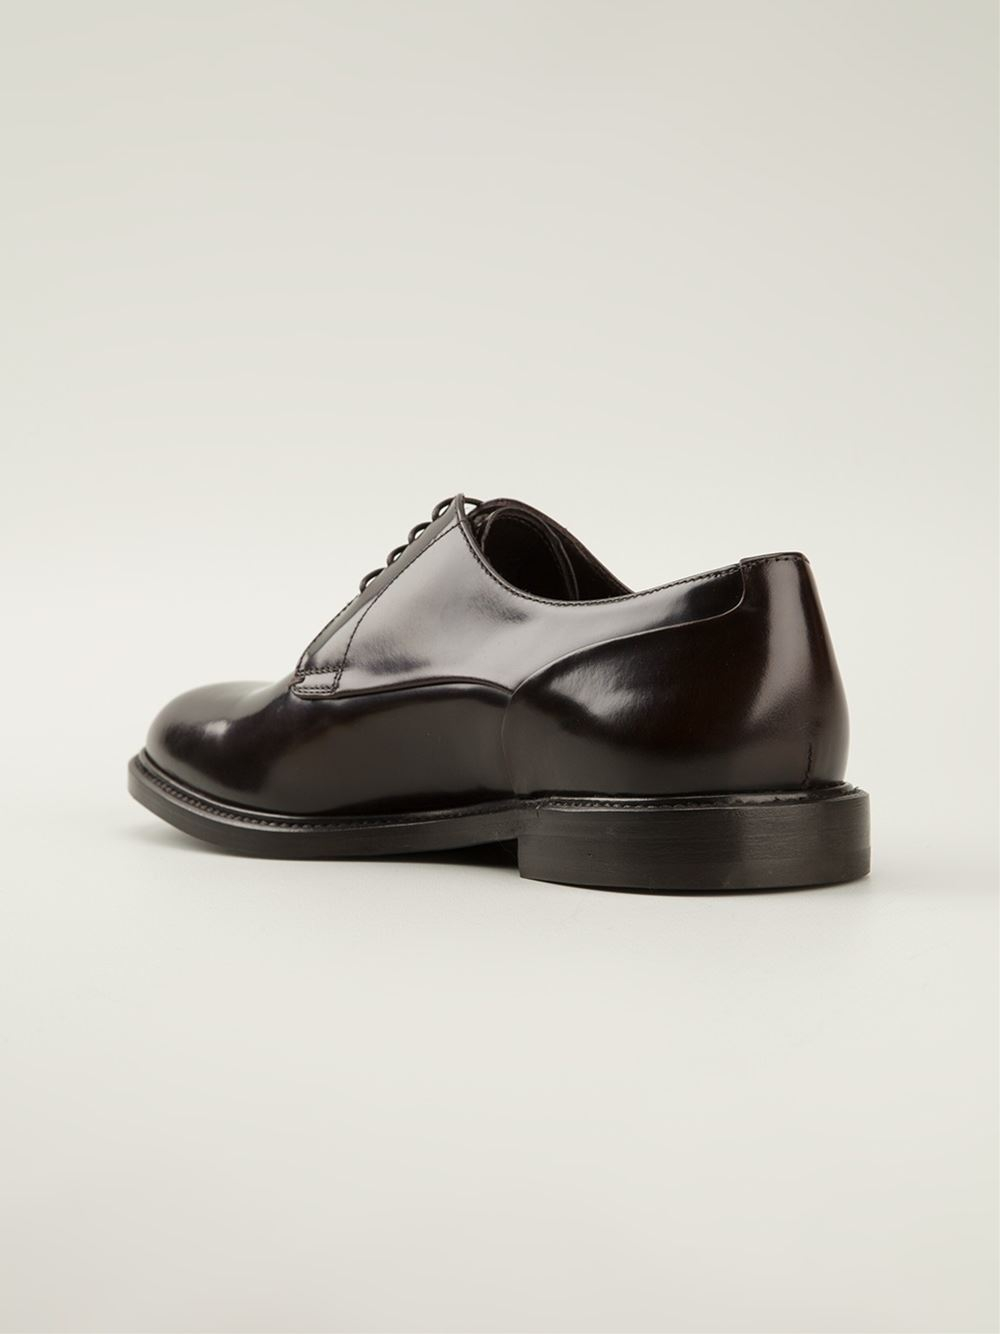 Lyst - Giorgio Armani Classic Derby Shoes in Brown for Men